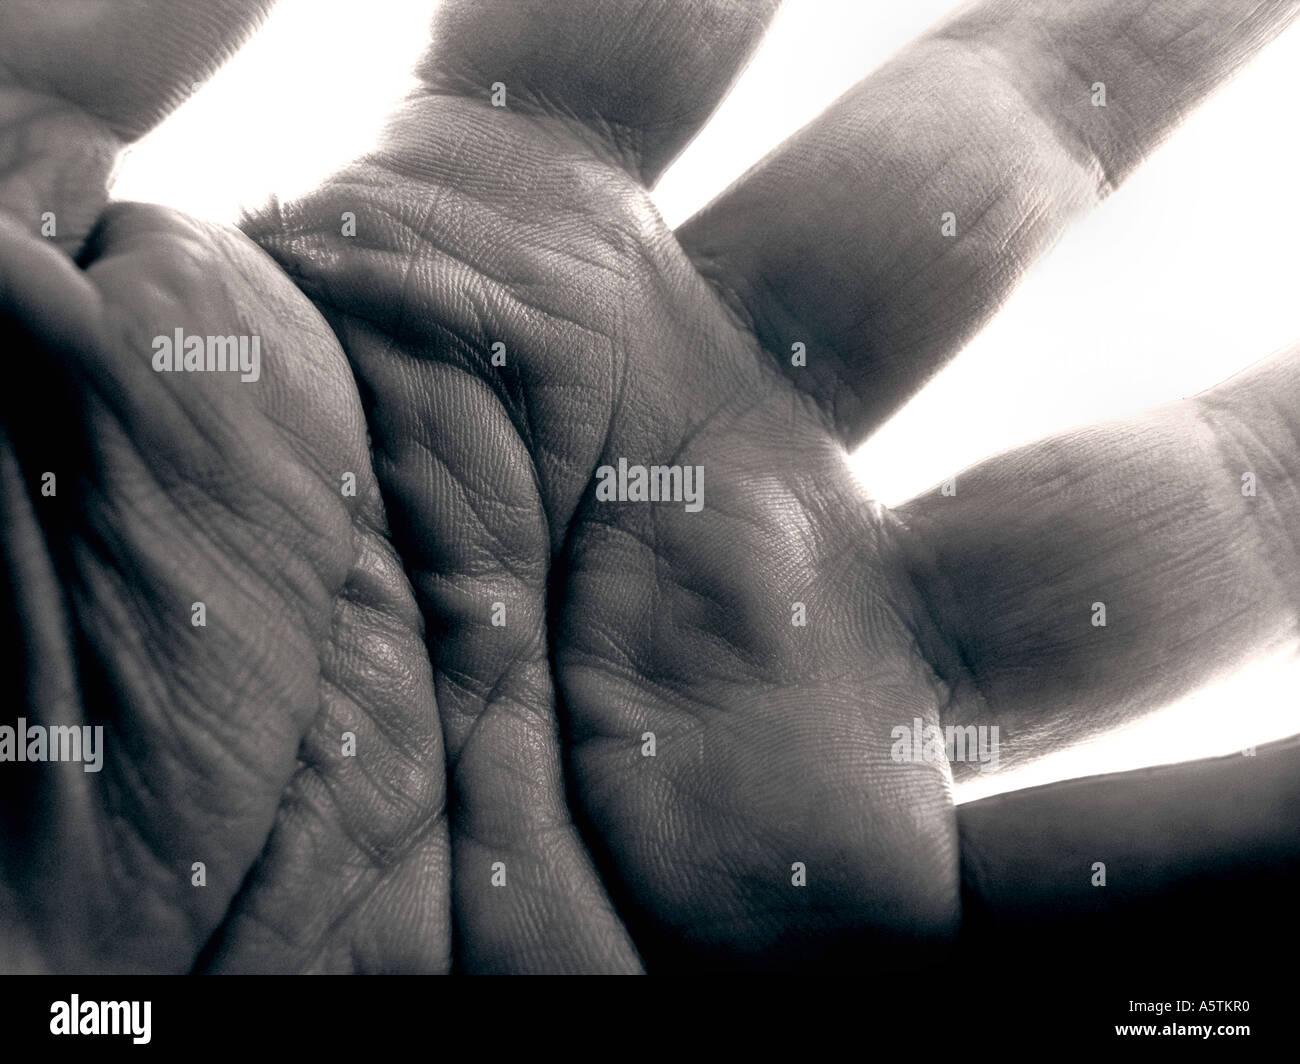 Black and white close up of palm of male hand against white background - Stock Image